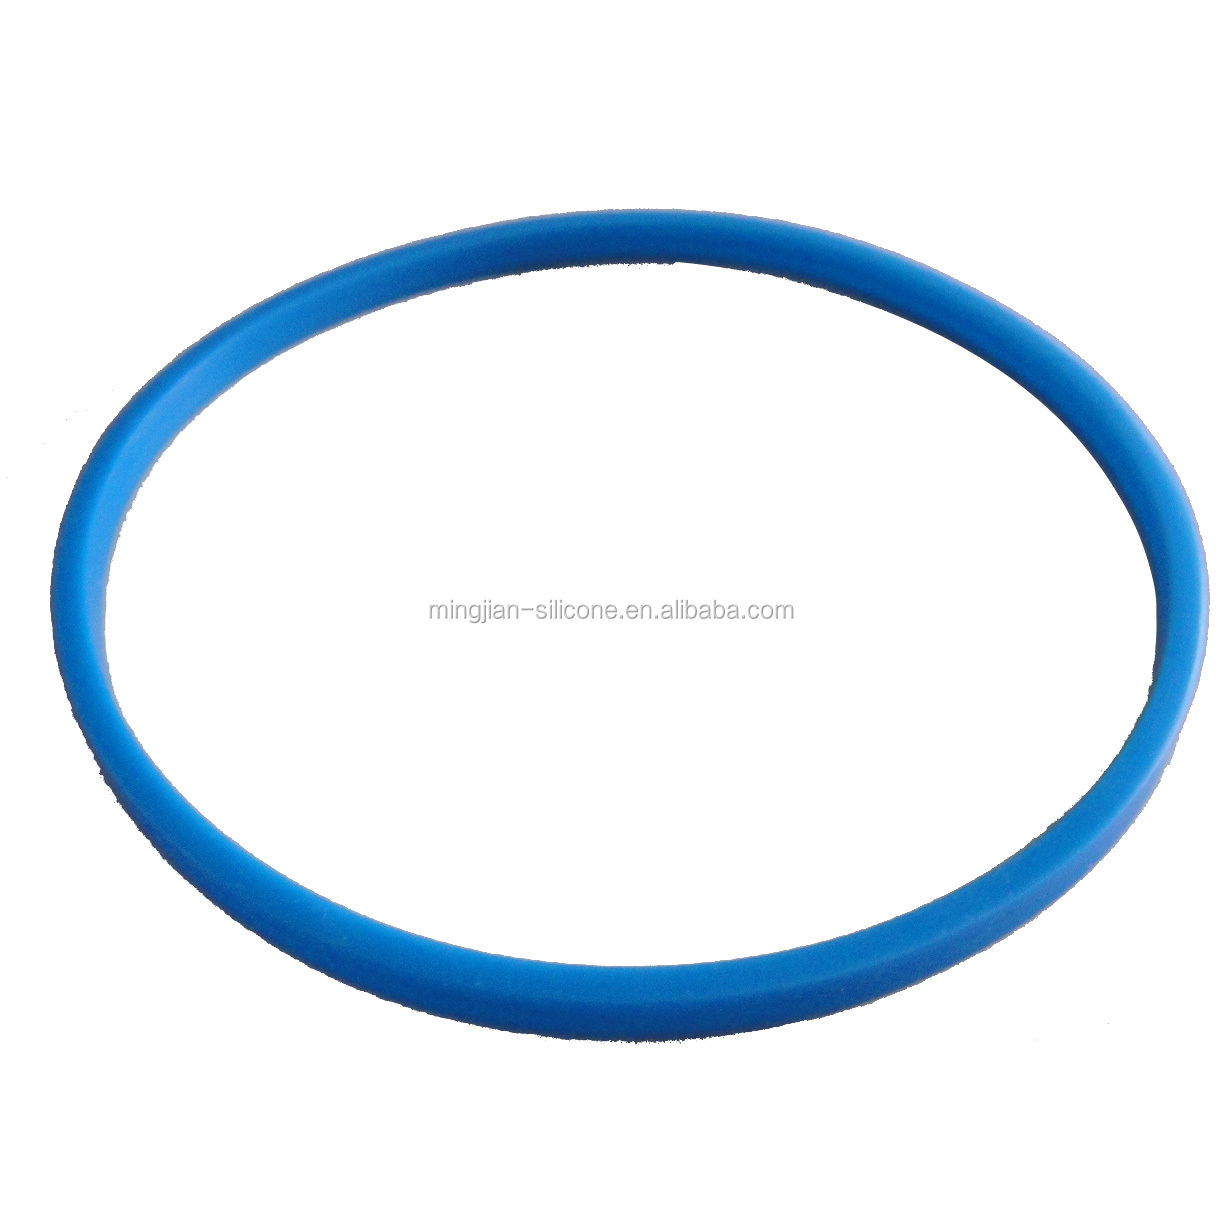 OEM( customized) FDA LFGB food degree approved airtight and liquid tight silicone rubber seal